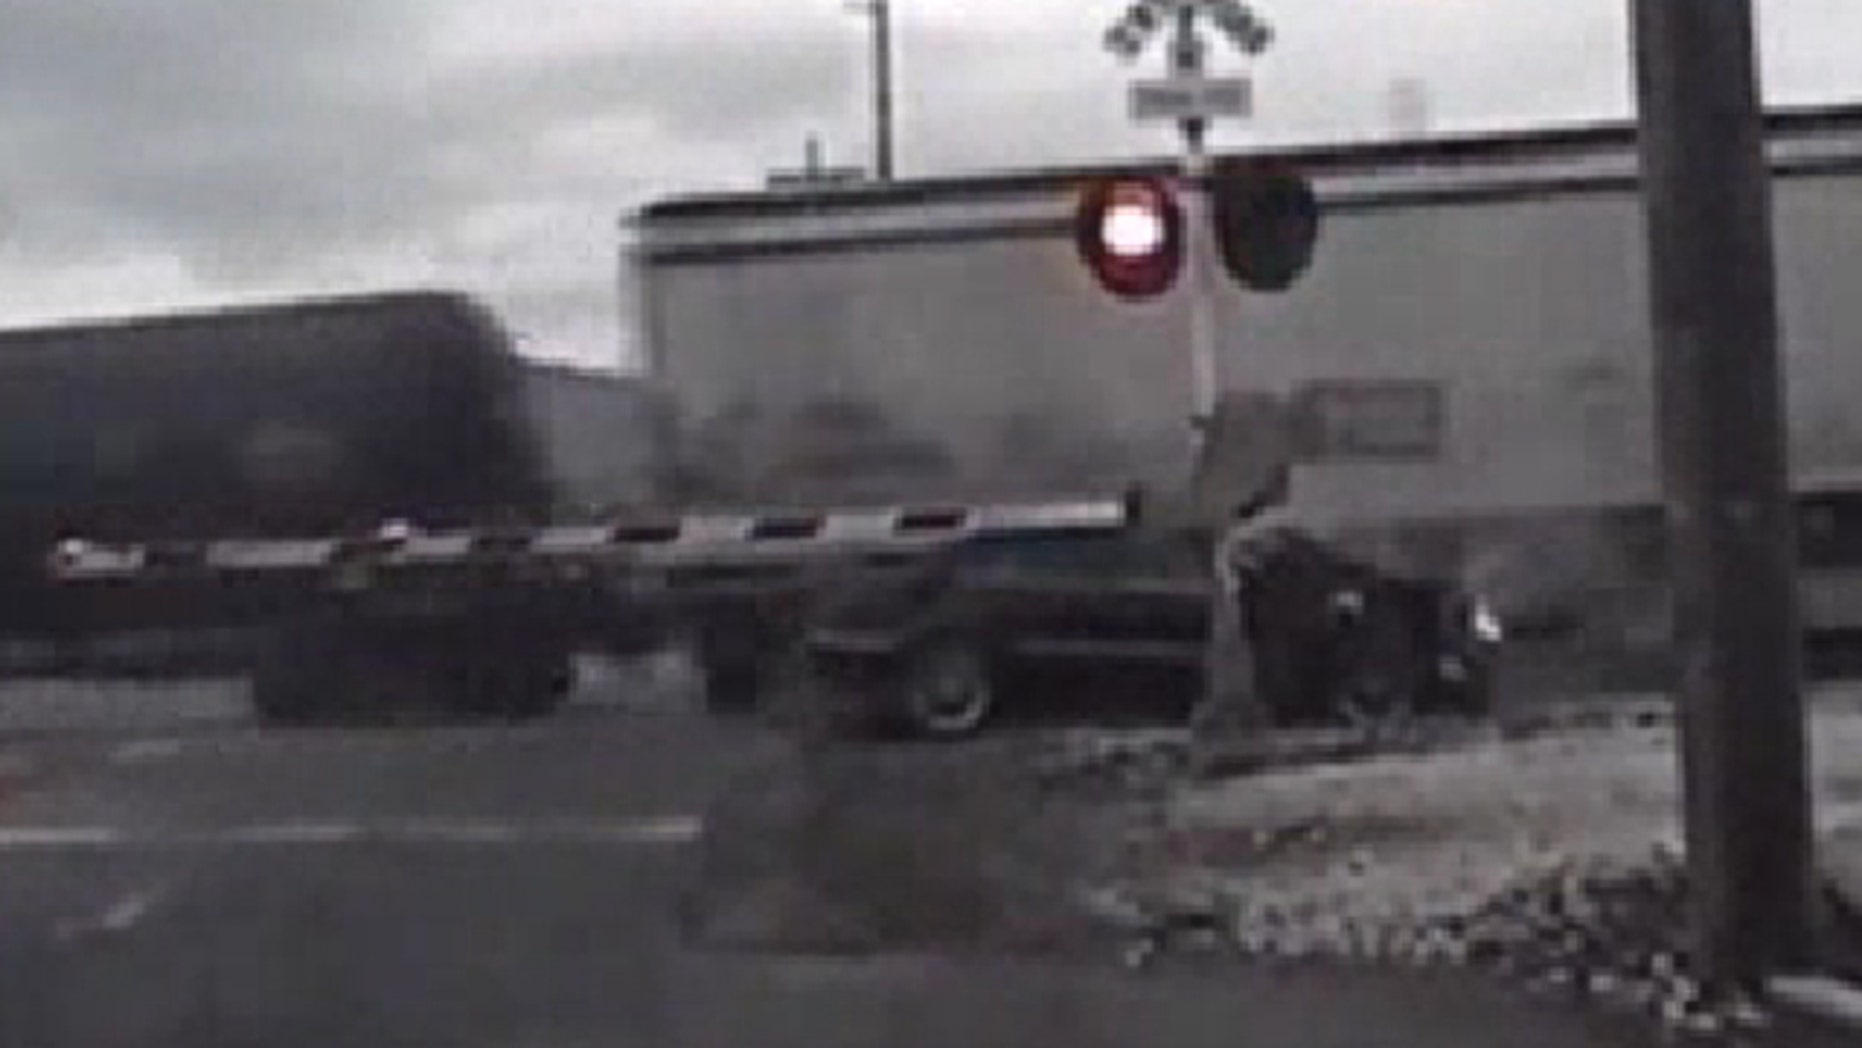 Oct. 15, 2013: Authorities say a woman who was trying to evade police was injured when the car she was driving crashed into a train and then was struck by a second train.